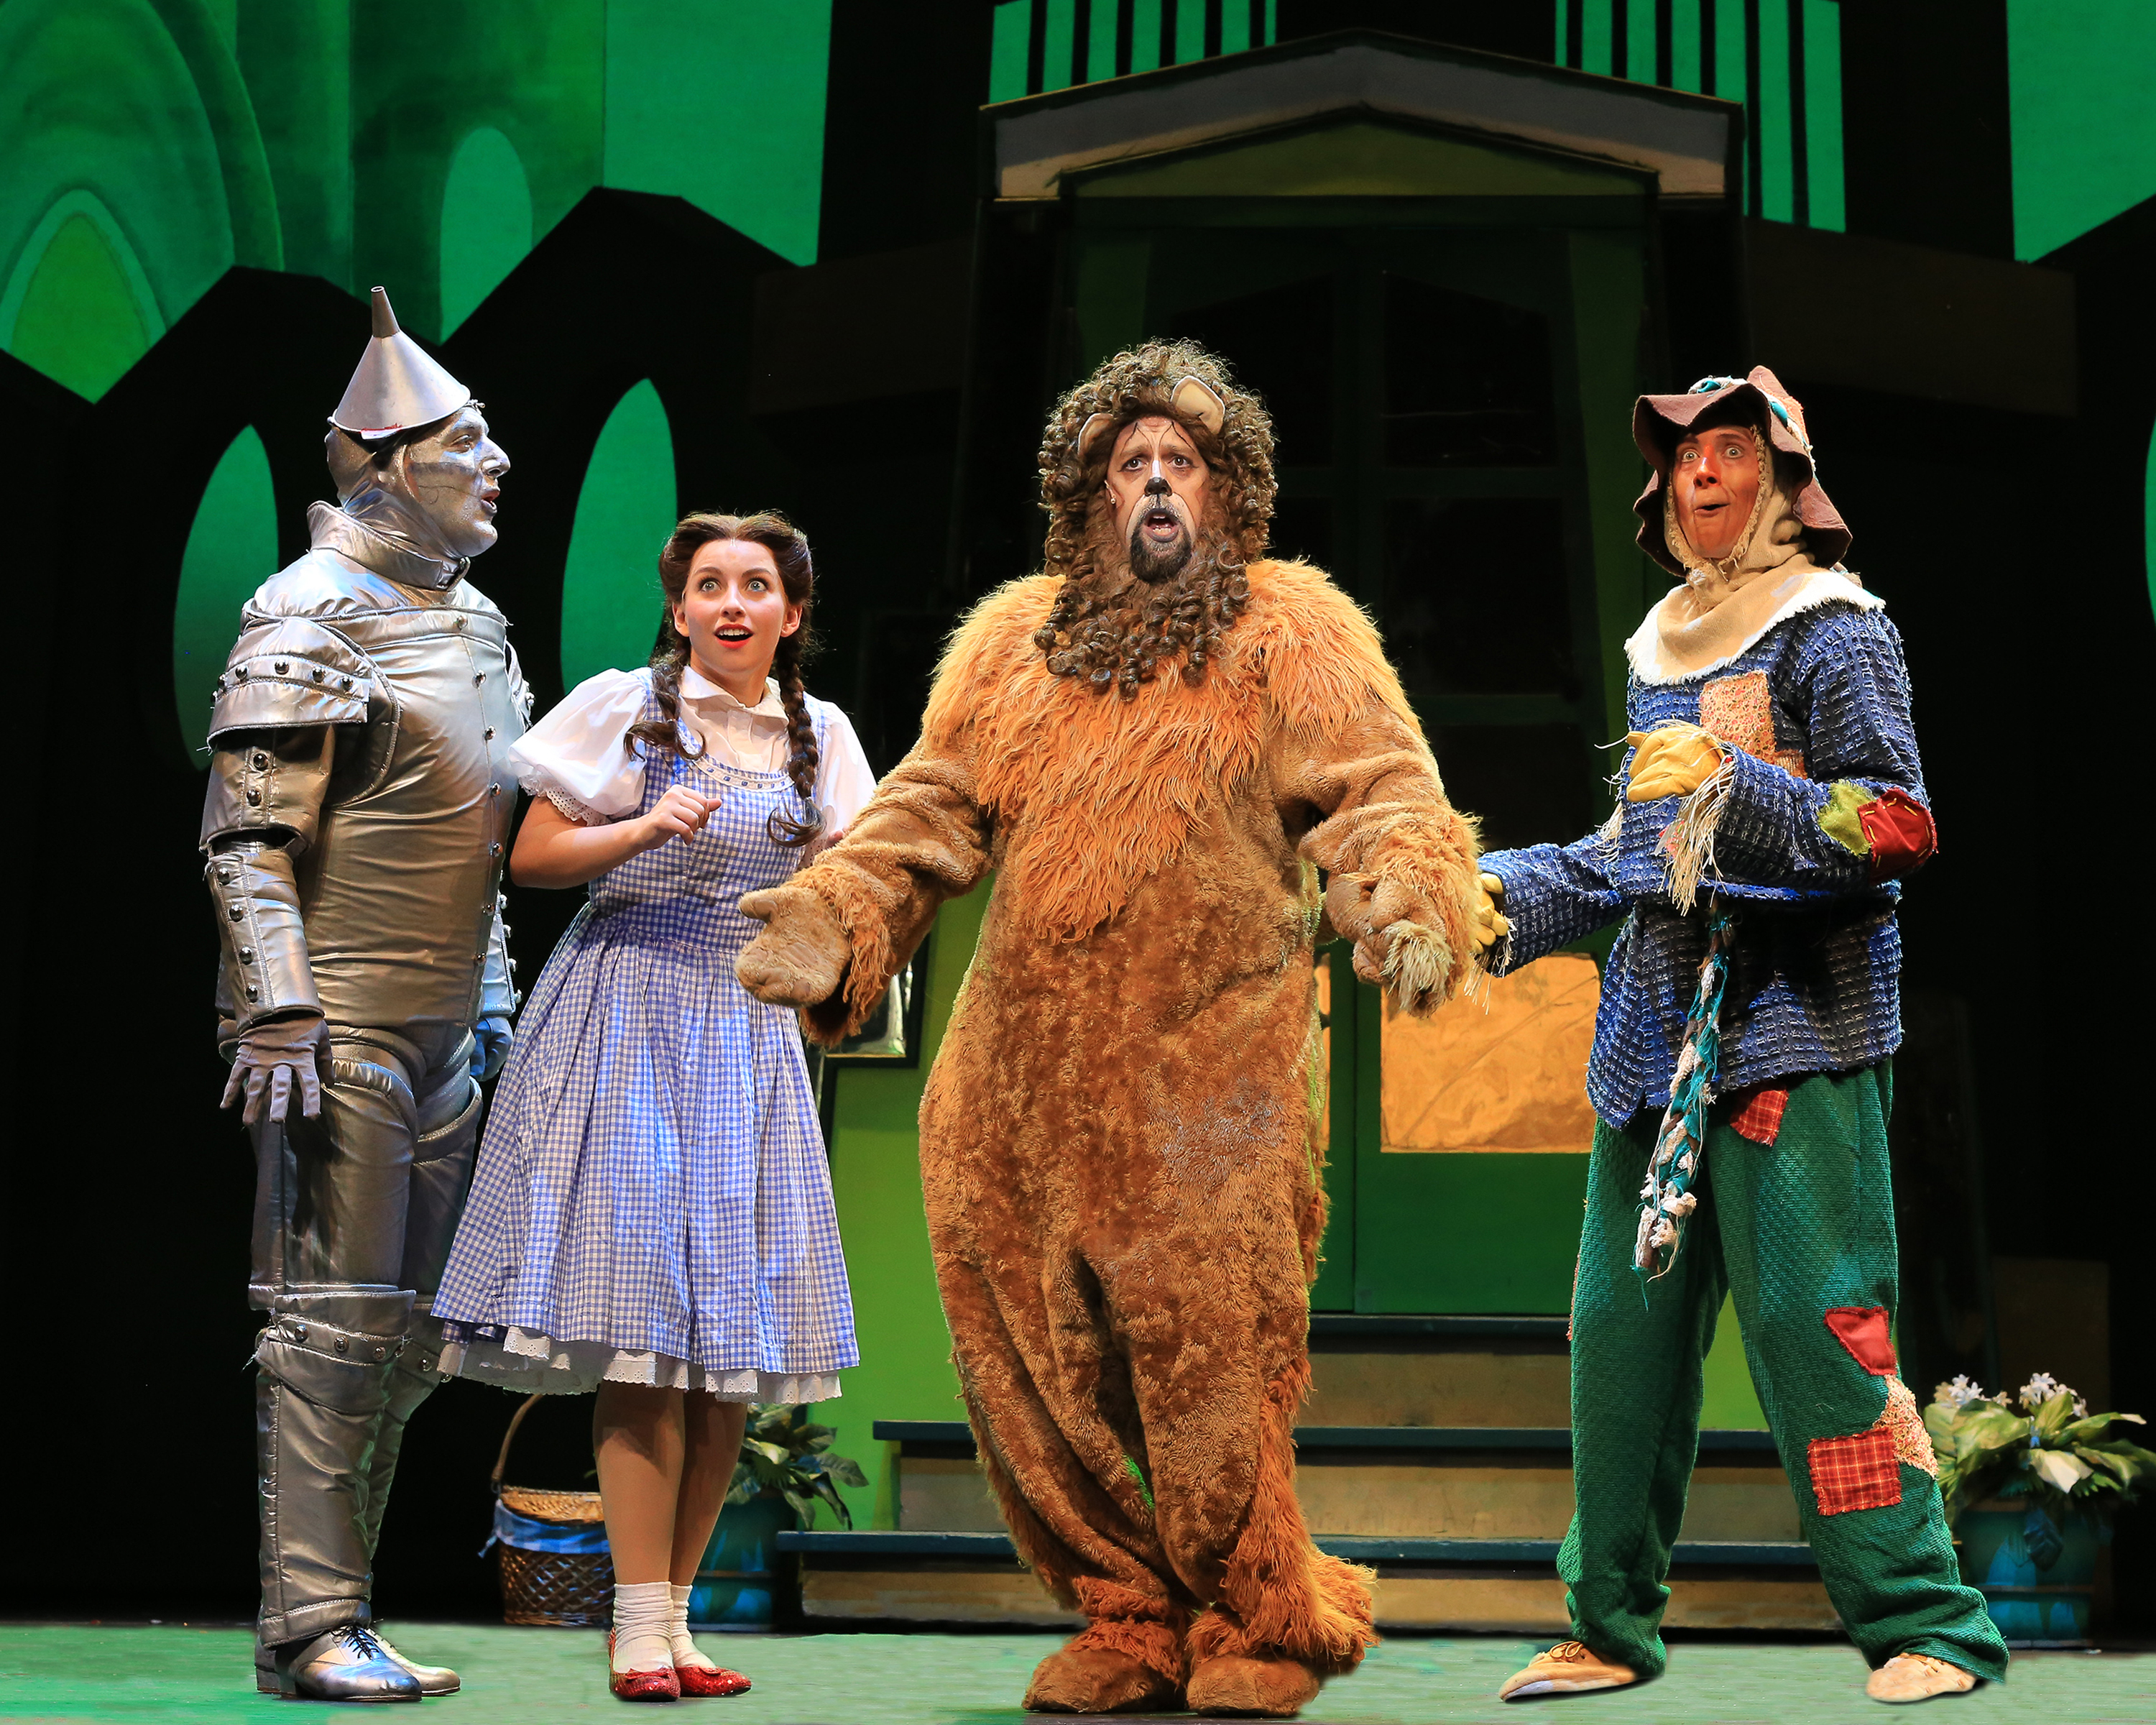 The Wizard of Oz - Four Friends in Oz